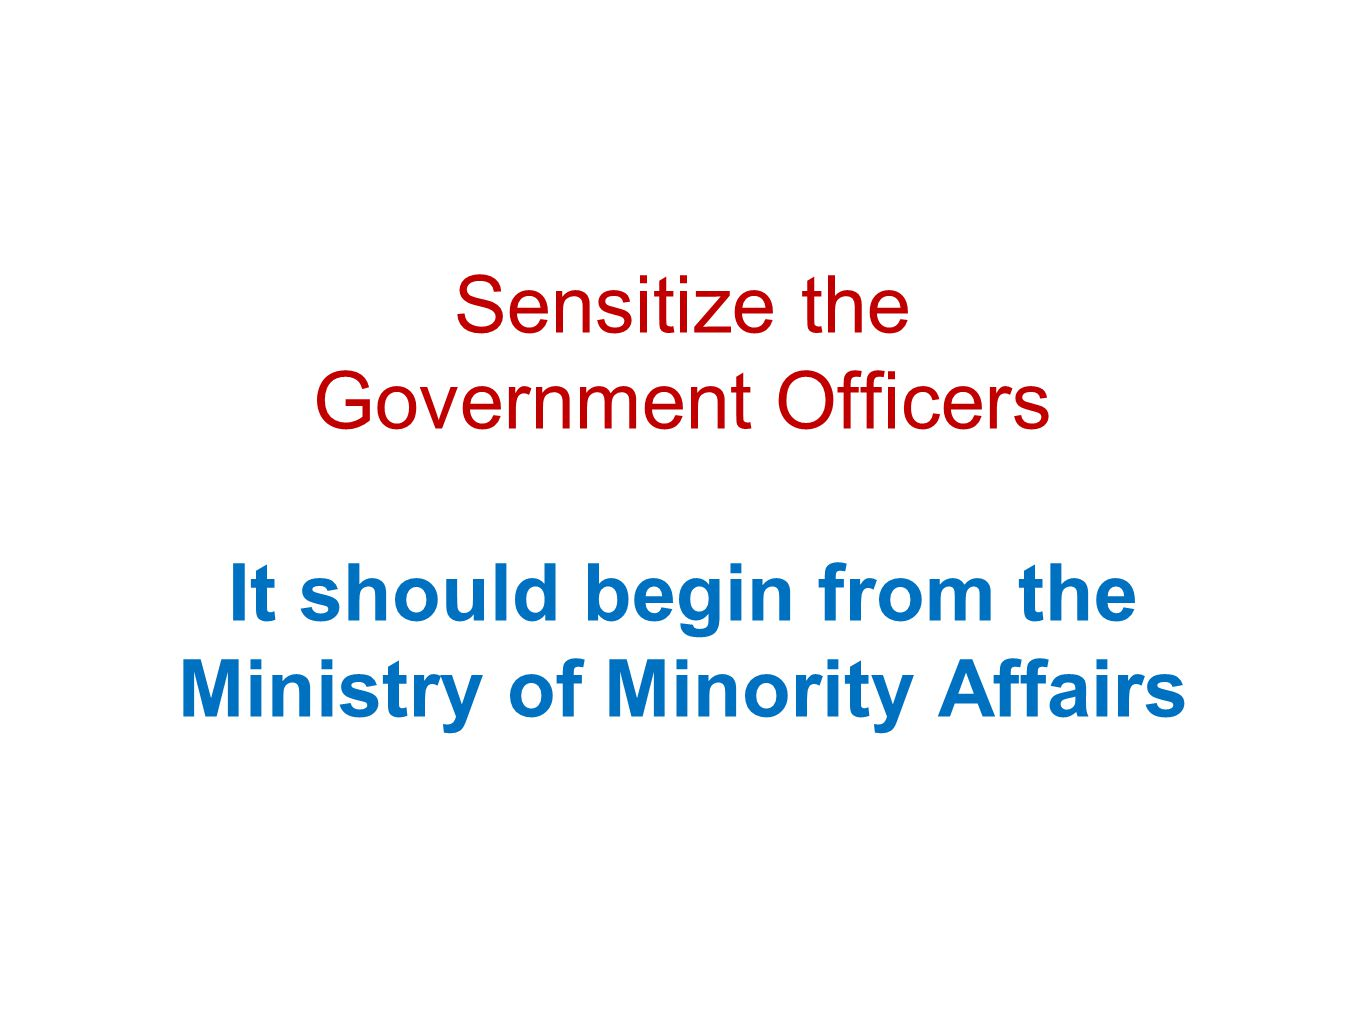 Sensitize the Government Officers It should begin from the Ministry of Minority Affairs